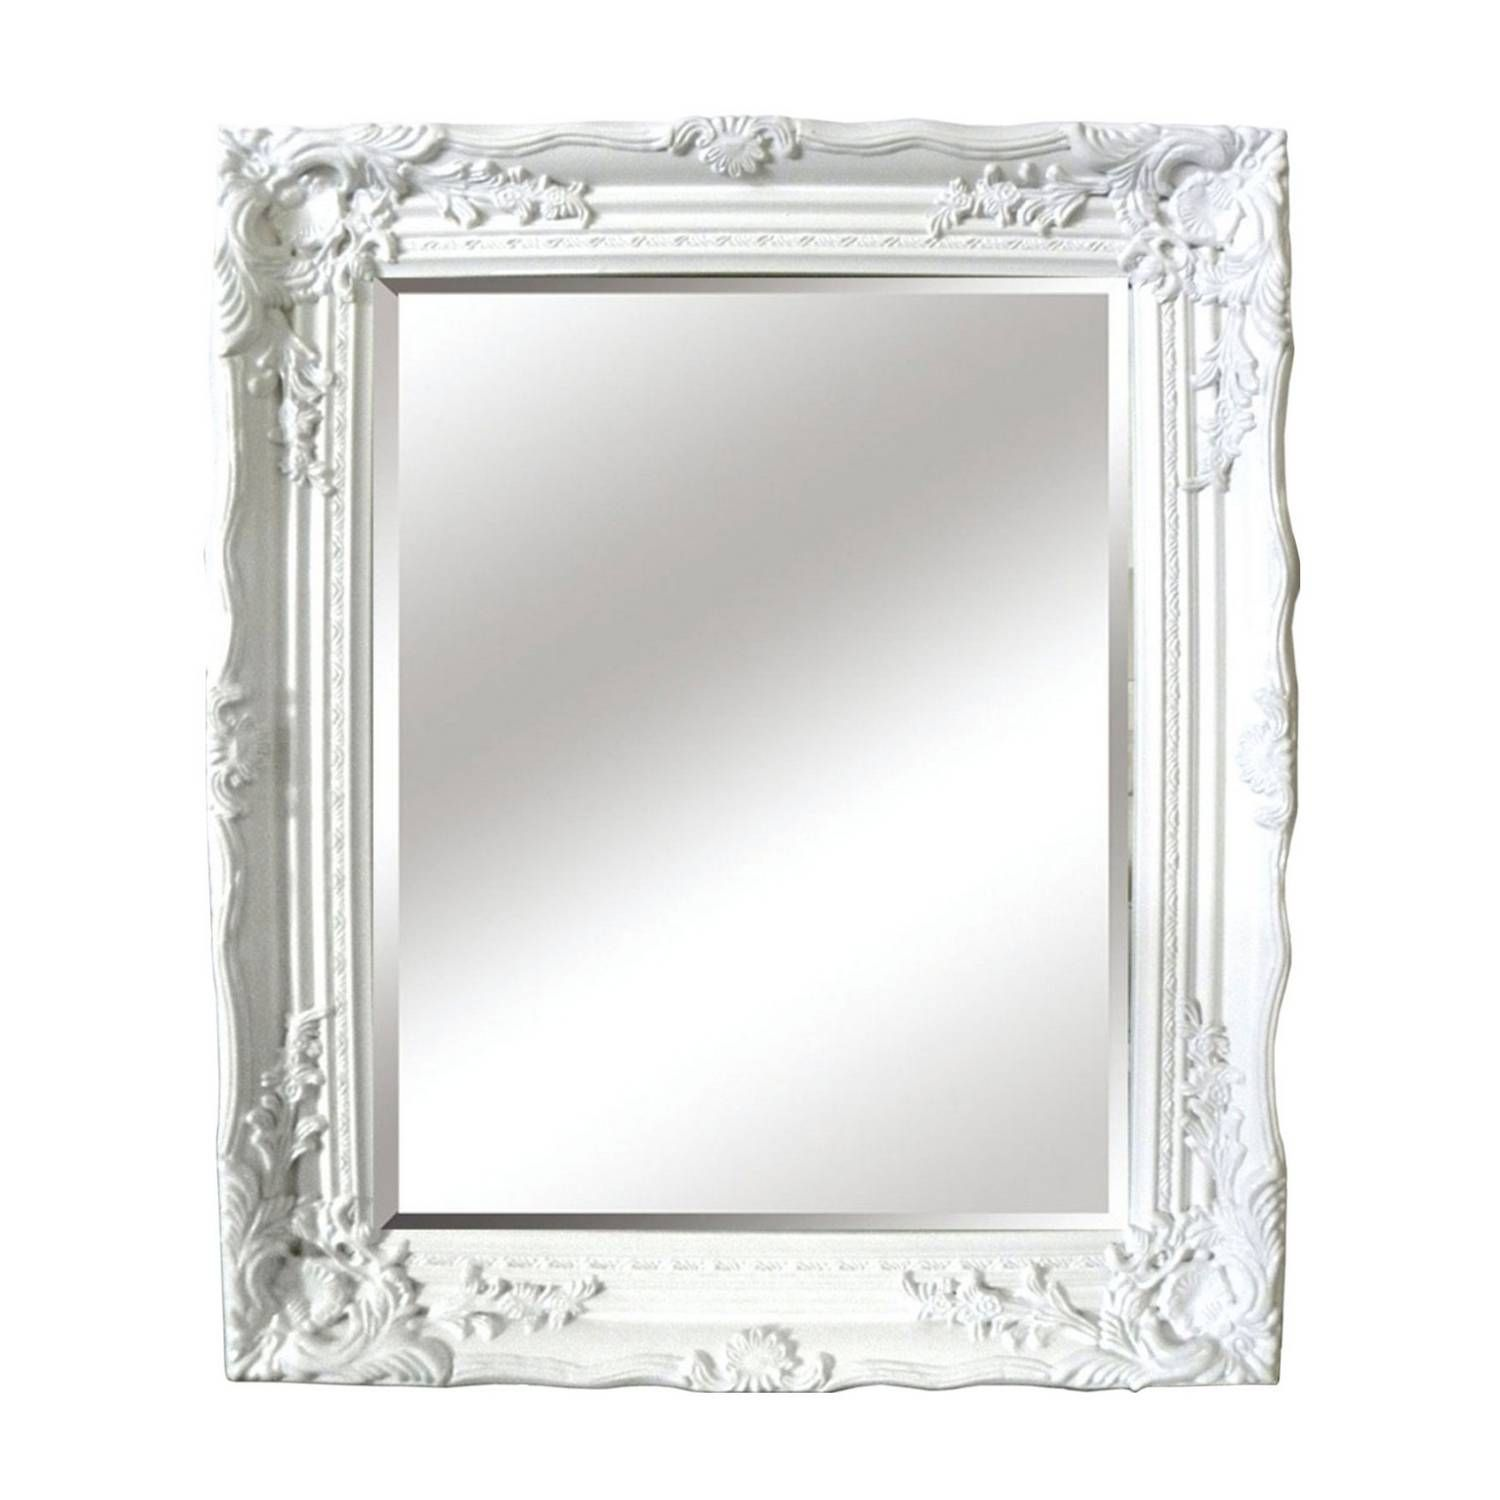 Buy antique white ornate mirror mirrors the range for White framed mirror